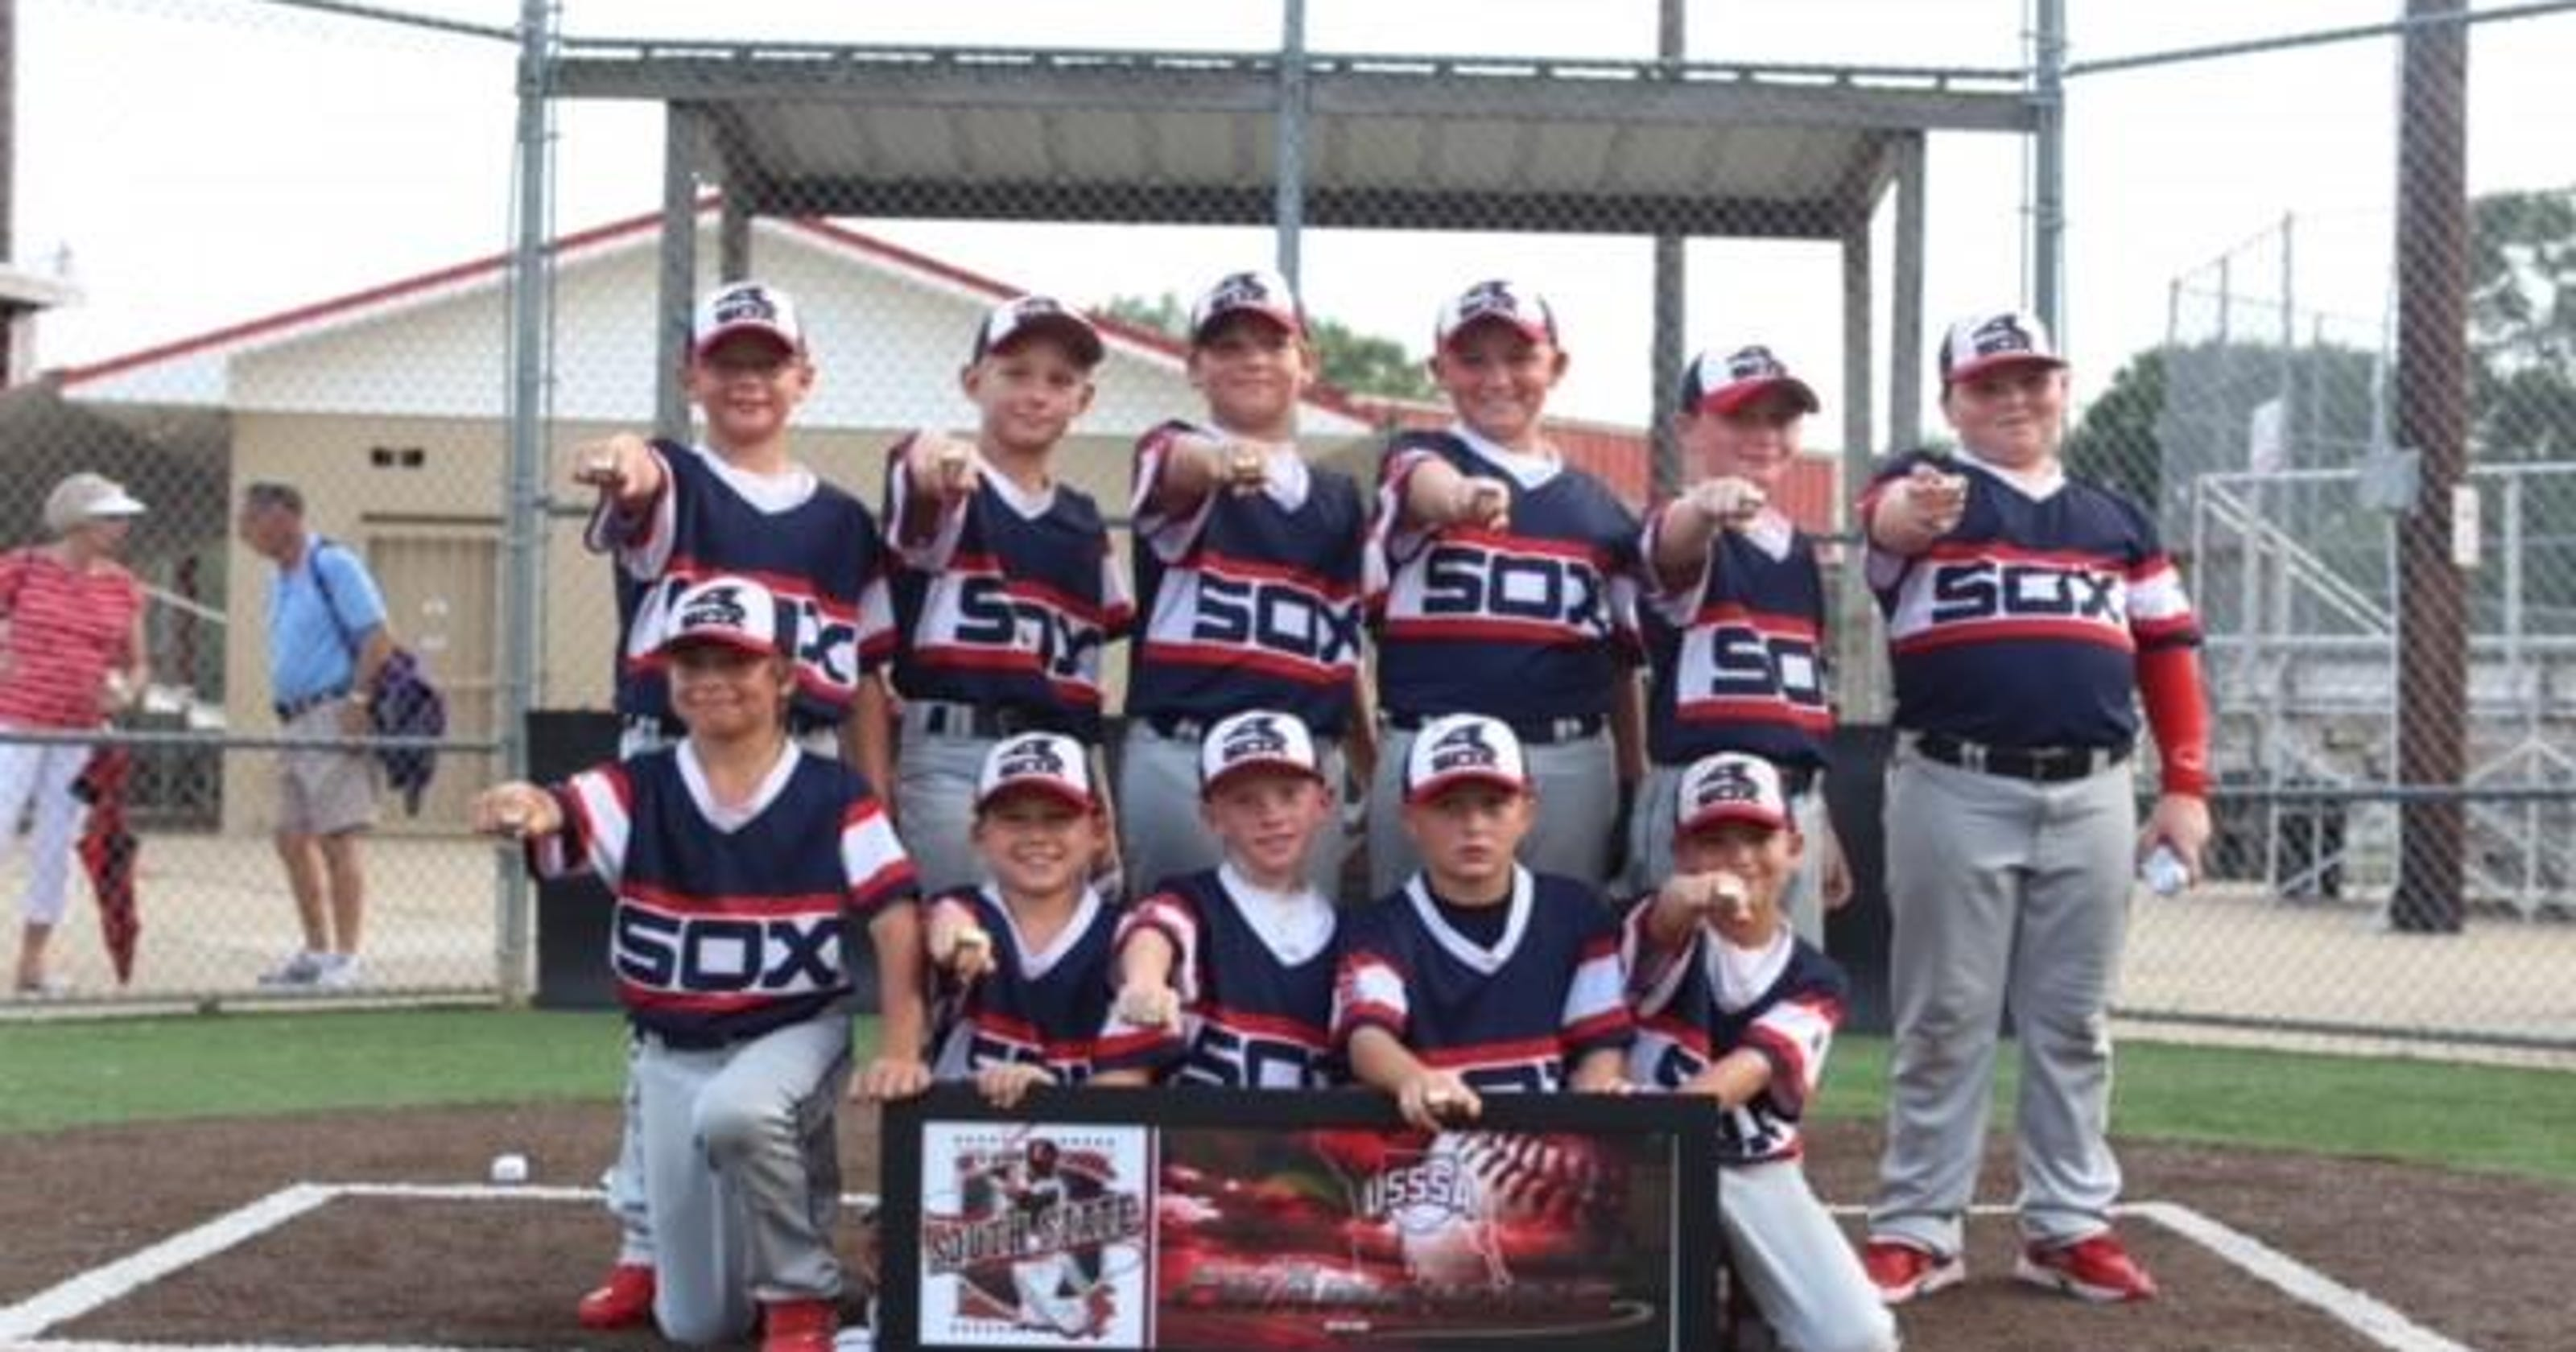 Local youth teams win three state championships